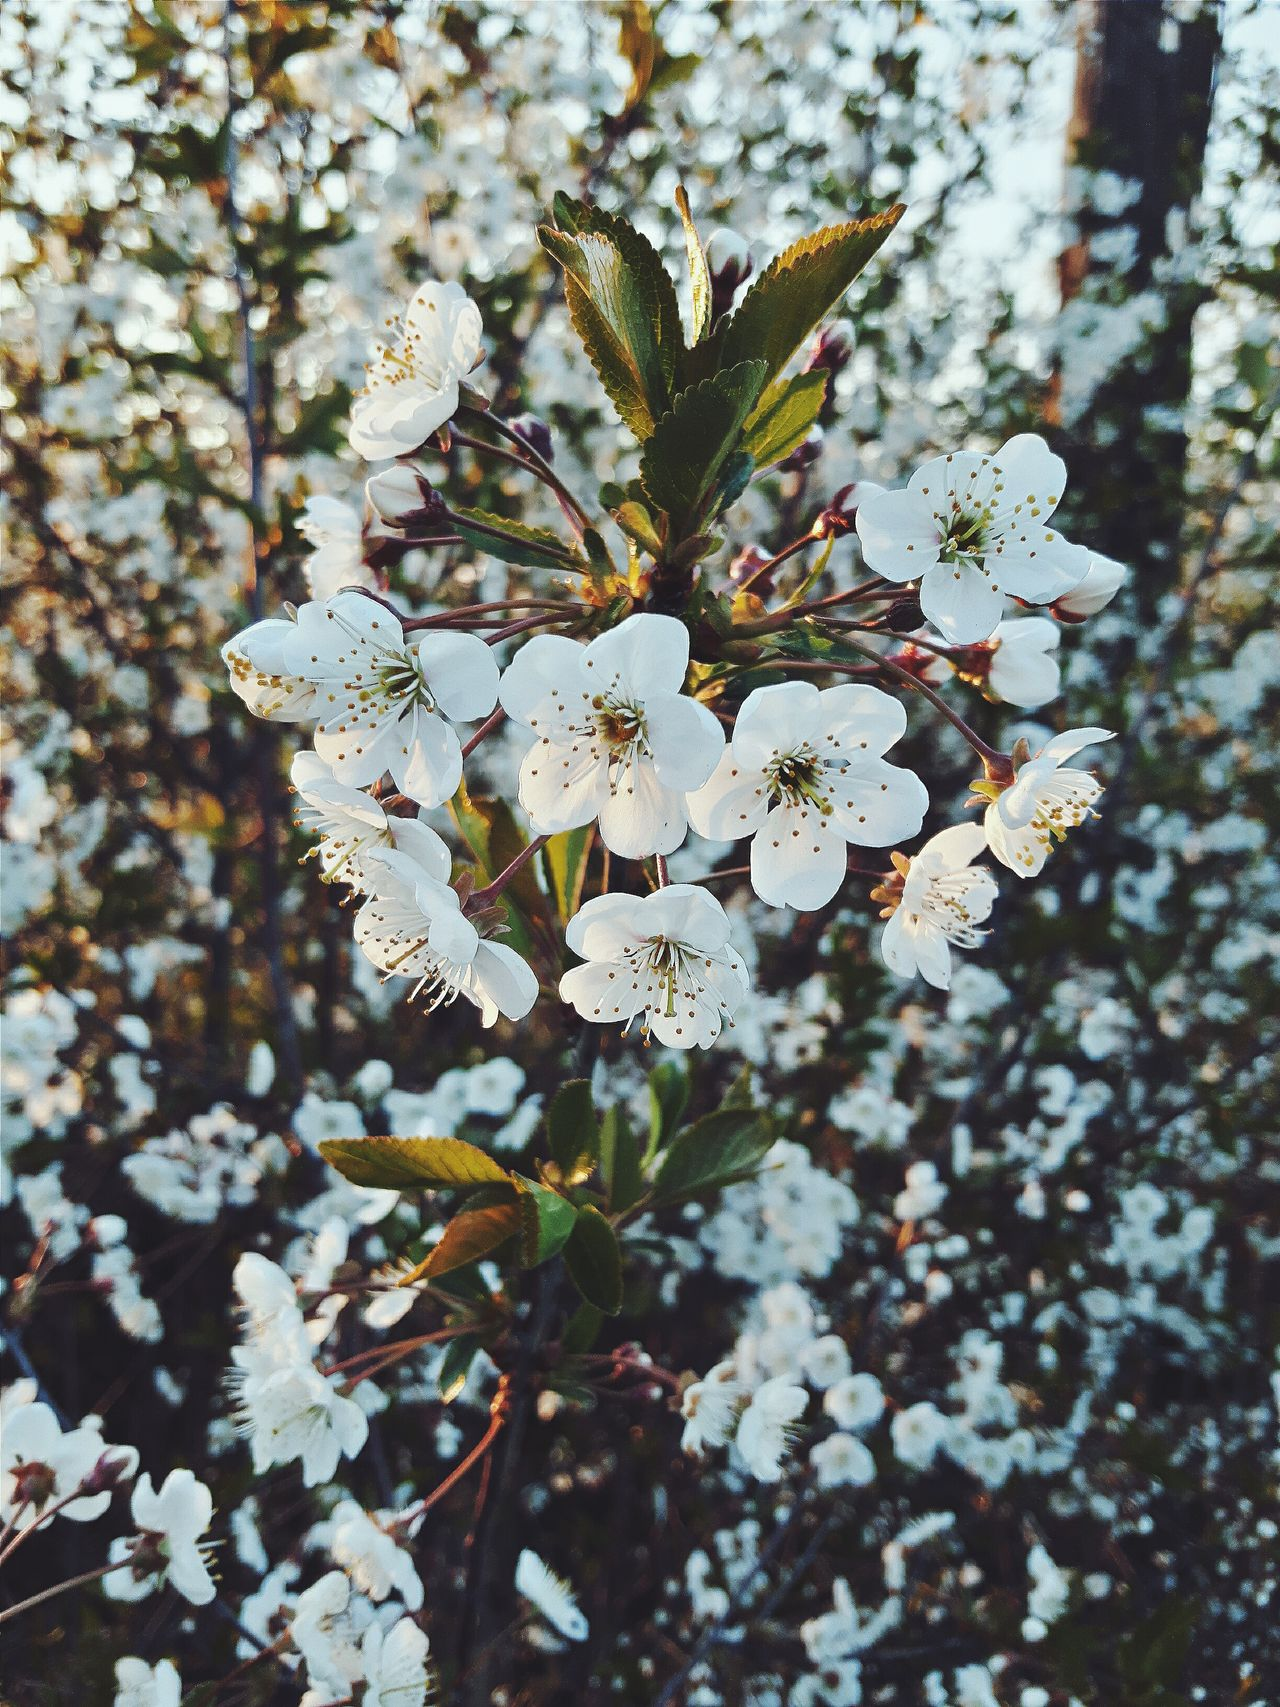 Cheery Tree Cherry Flowers First Eyeem Photo Polandball First Eyeem Photo